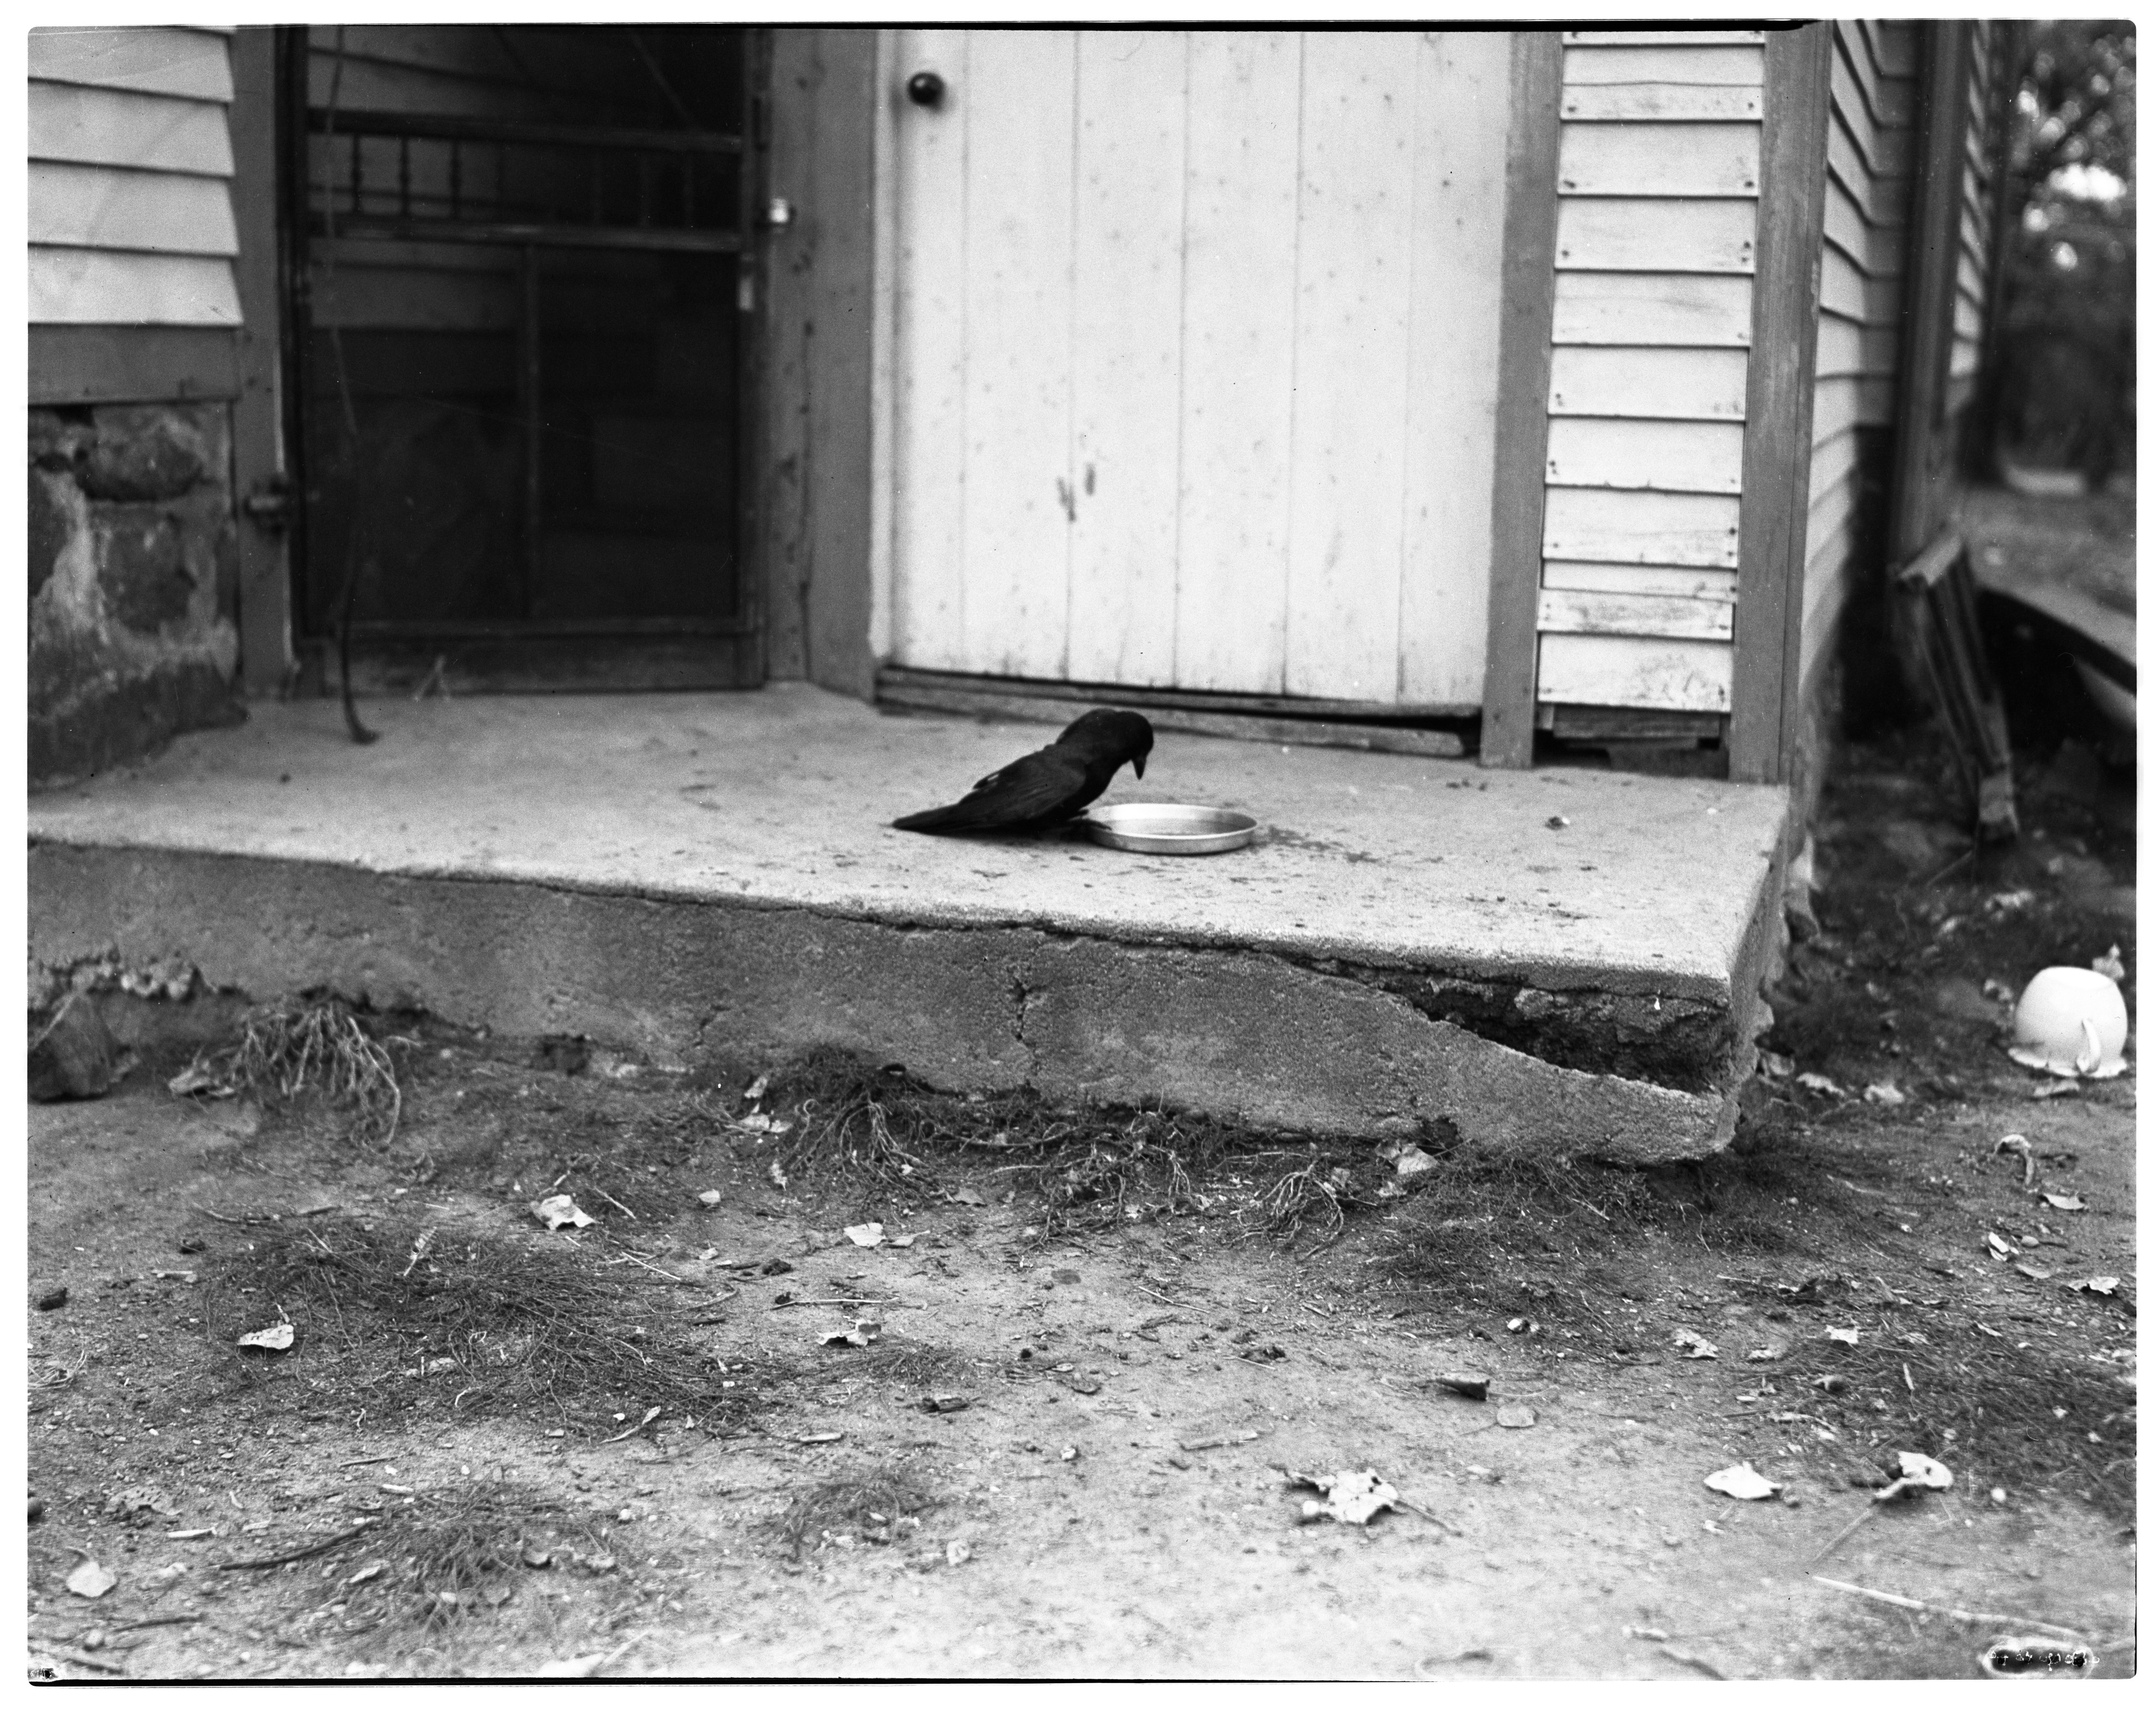 The George Grossman Family's Pet Crow in Manchester image